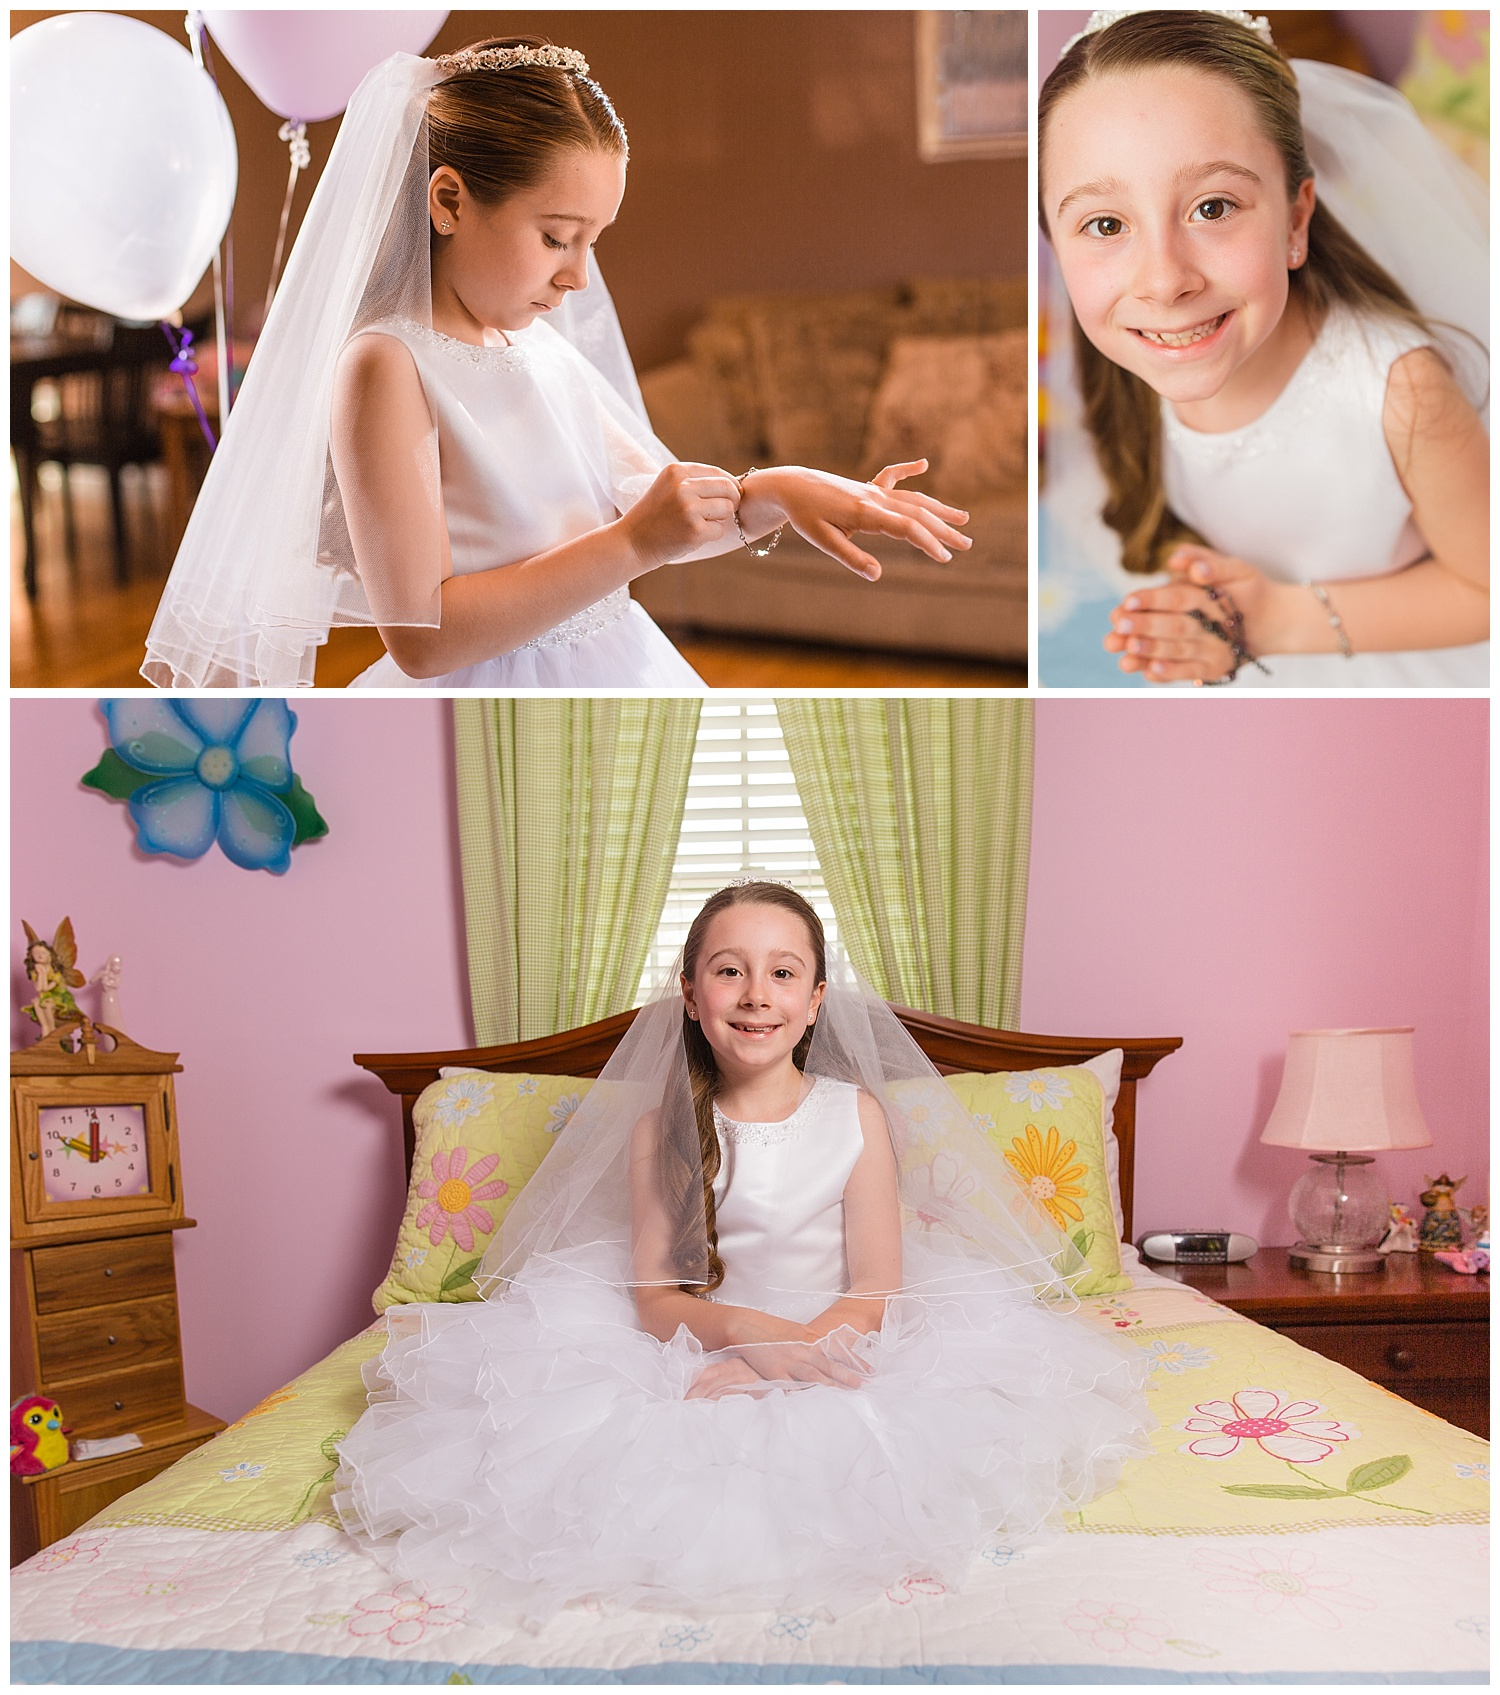 daniel_nydick_nj_wedding-family-lifestyle-photographer_2